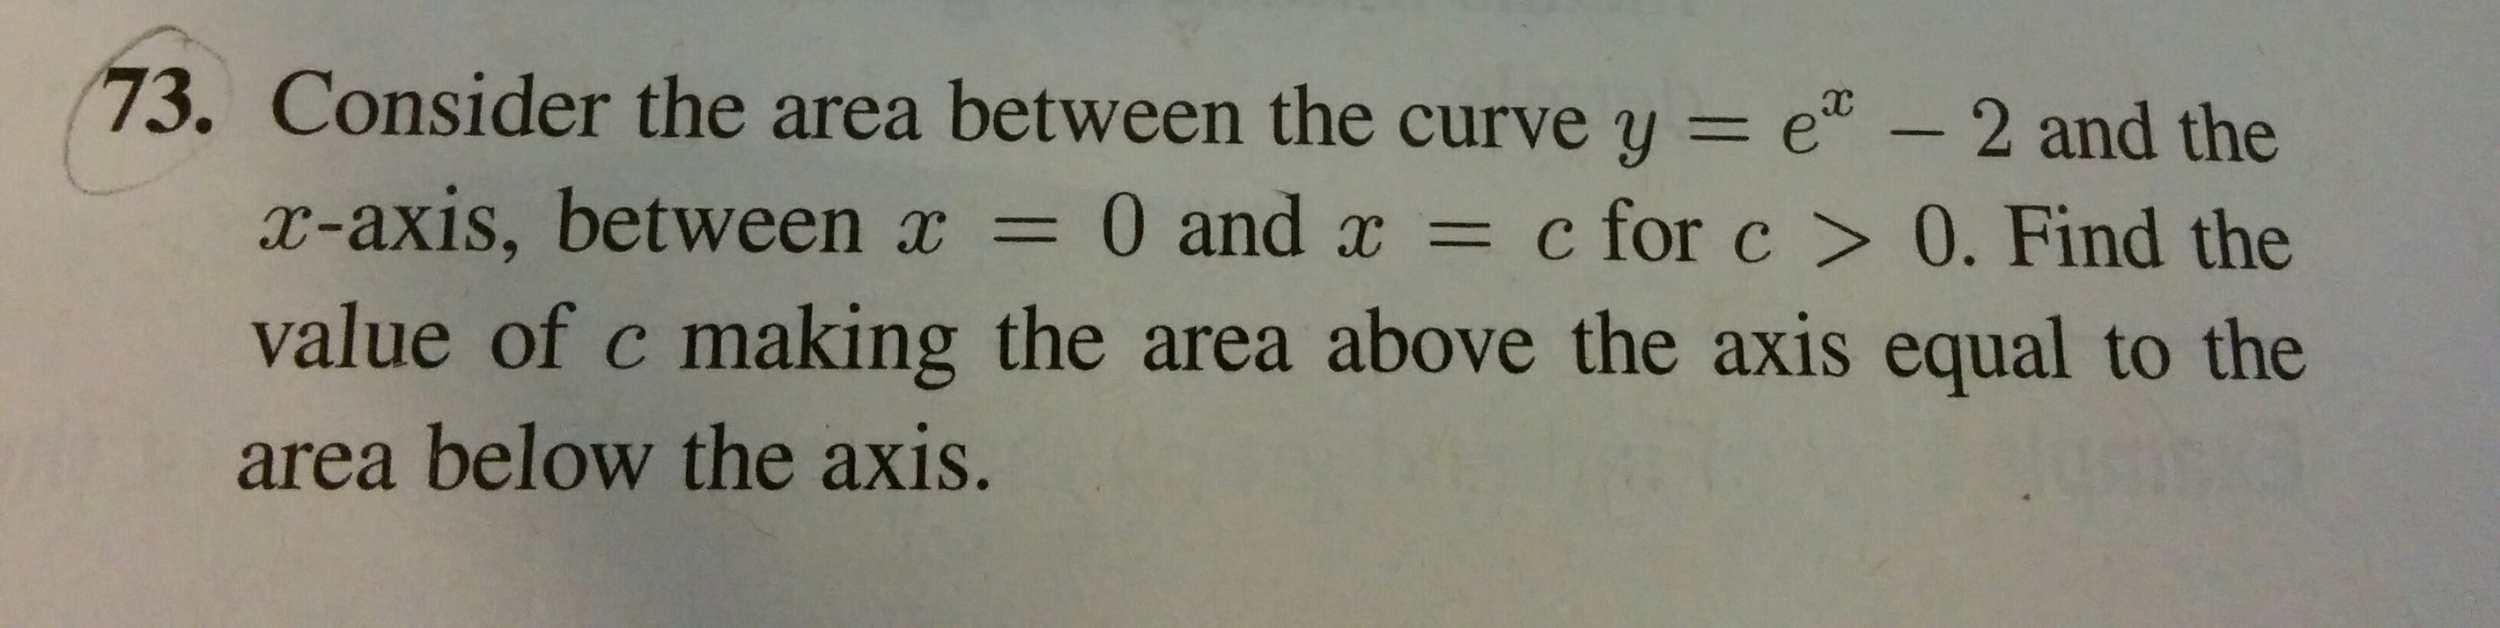 The Xaxis, Between X = 0 And X = C For C > 0 Find The Value Of C  Making The Area Above The Axis Equal To The Area Below The Axis